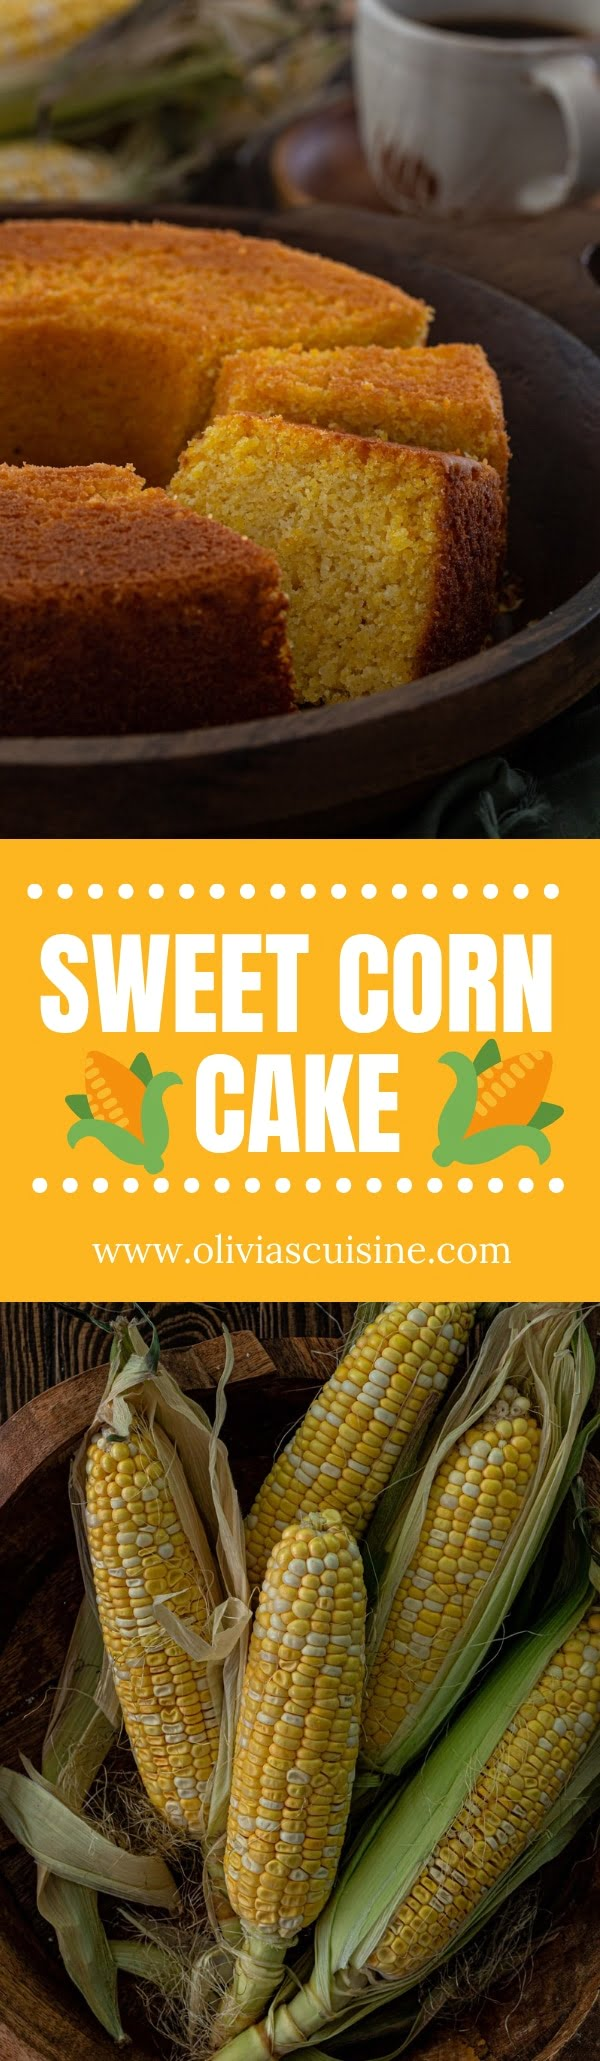 Brazilian Sweet Corn Cake with Coconut | www.oliviascuisine.com | Out of all the things to make with fresh corn, Sweet Corn Cake might be my favorite! It is a breeze to make and goes great with a cup of coffee. (Recipe and food photography by @oliviascuisine.) #corncake #cornbread #brazilianfood #easycake